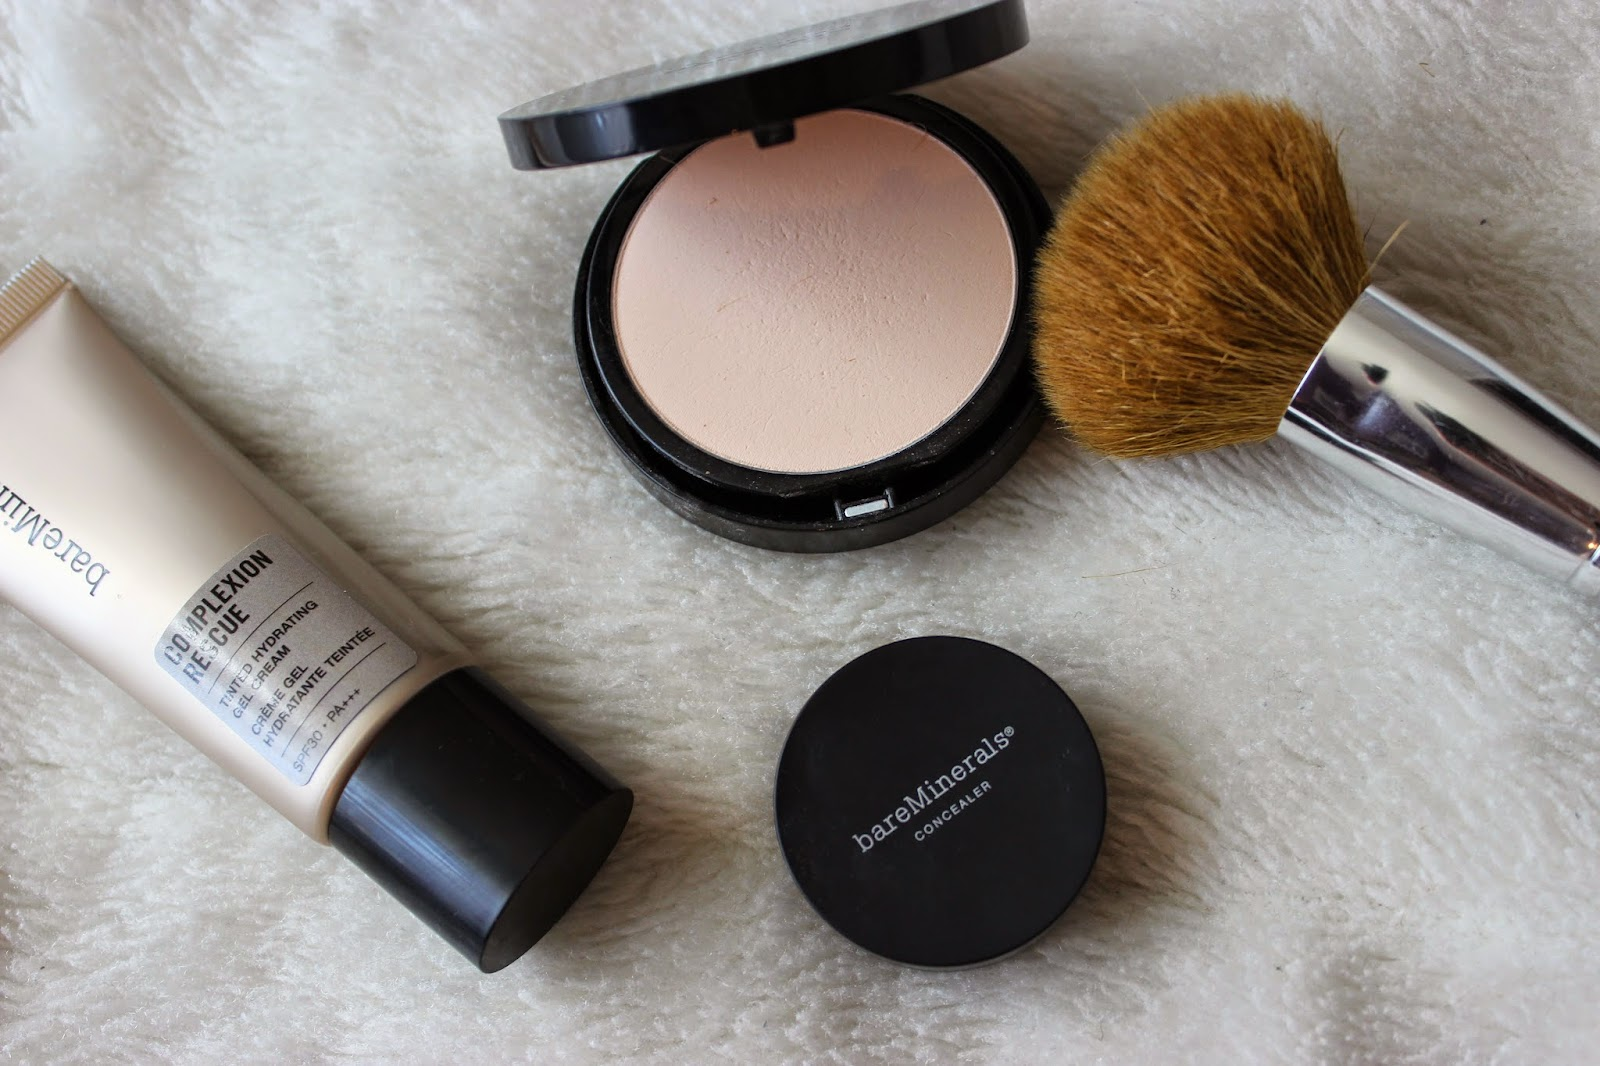 Complexion Rescue et bareSkin Perfecting Veil by bareMinerals